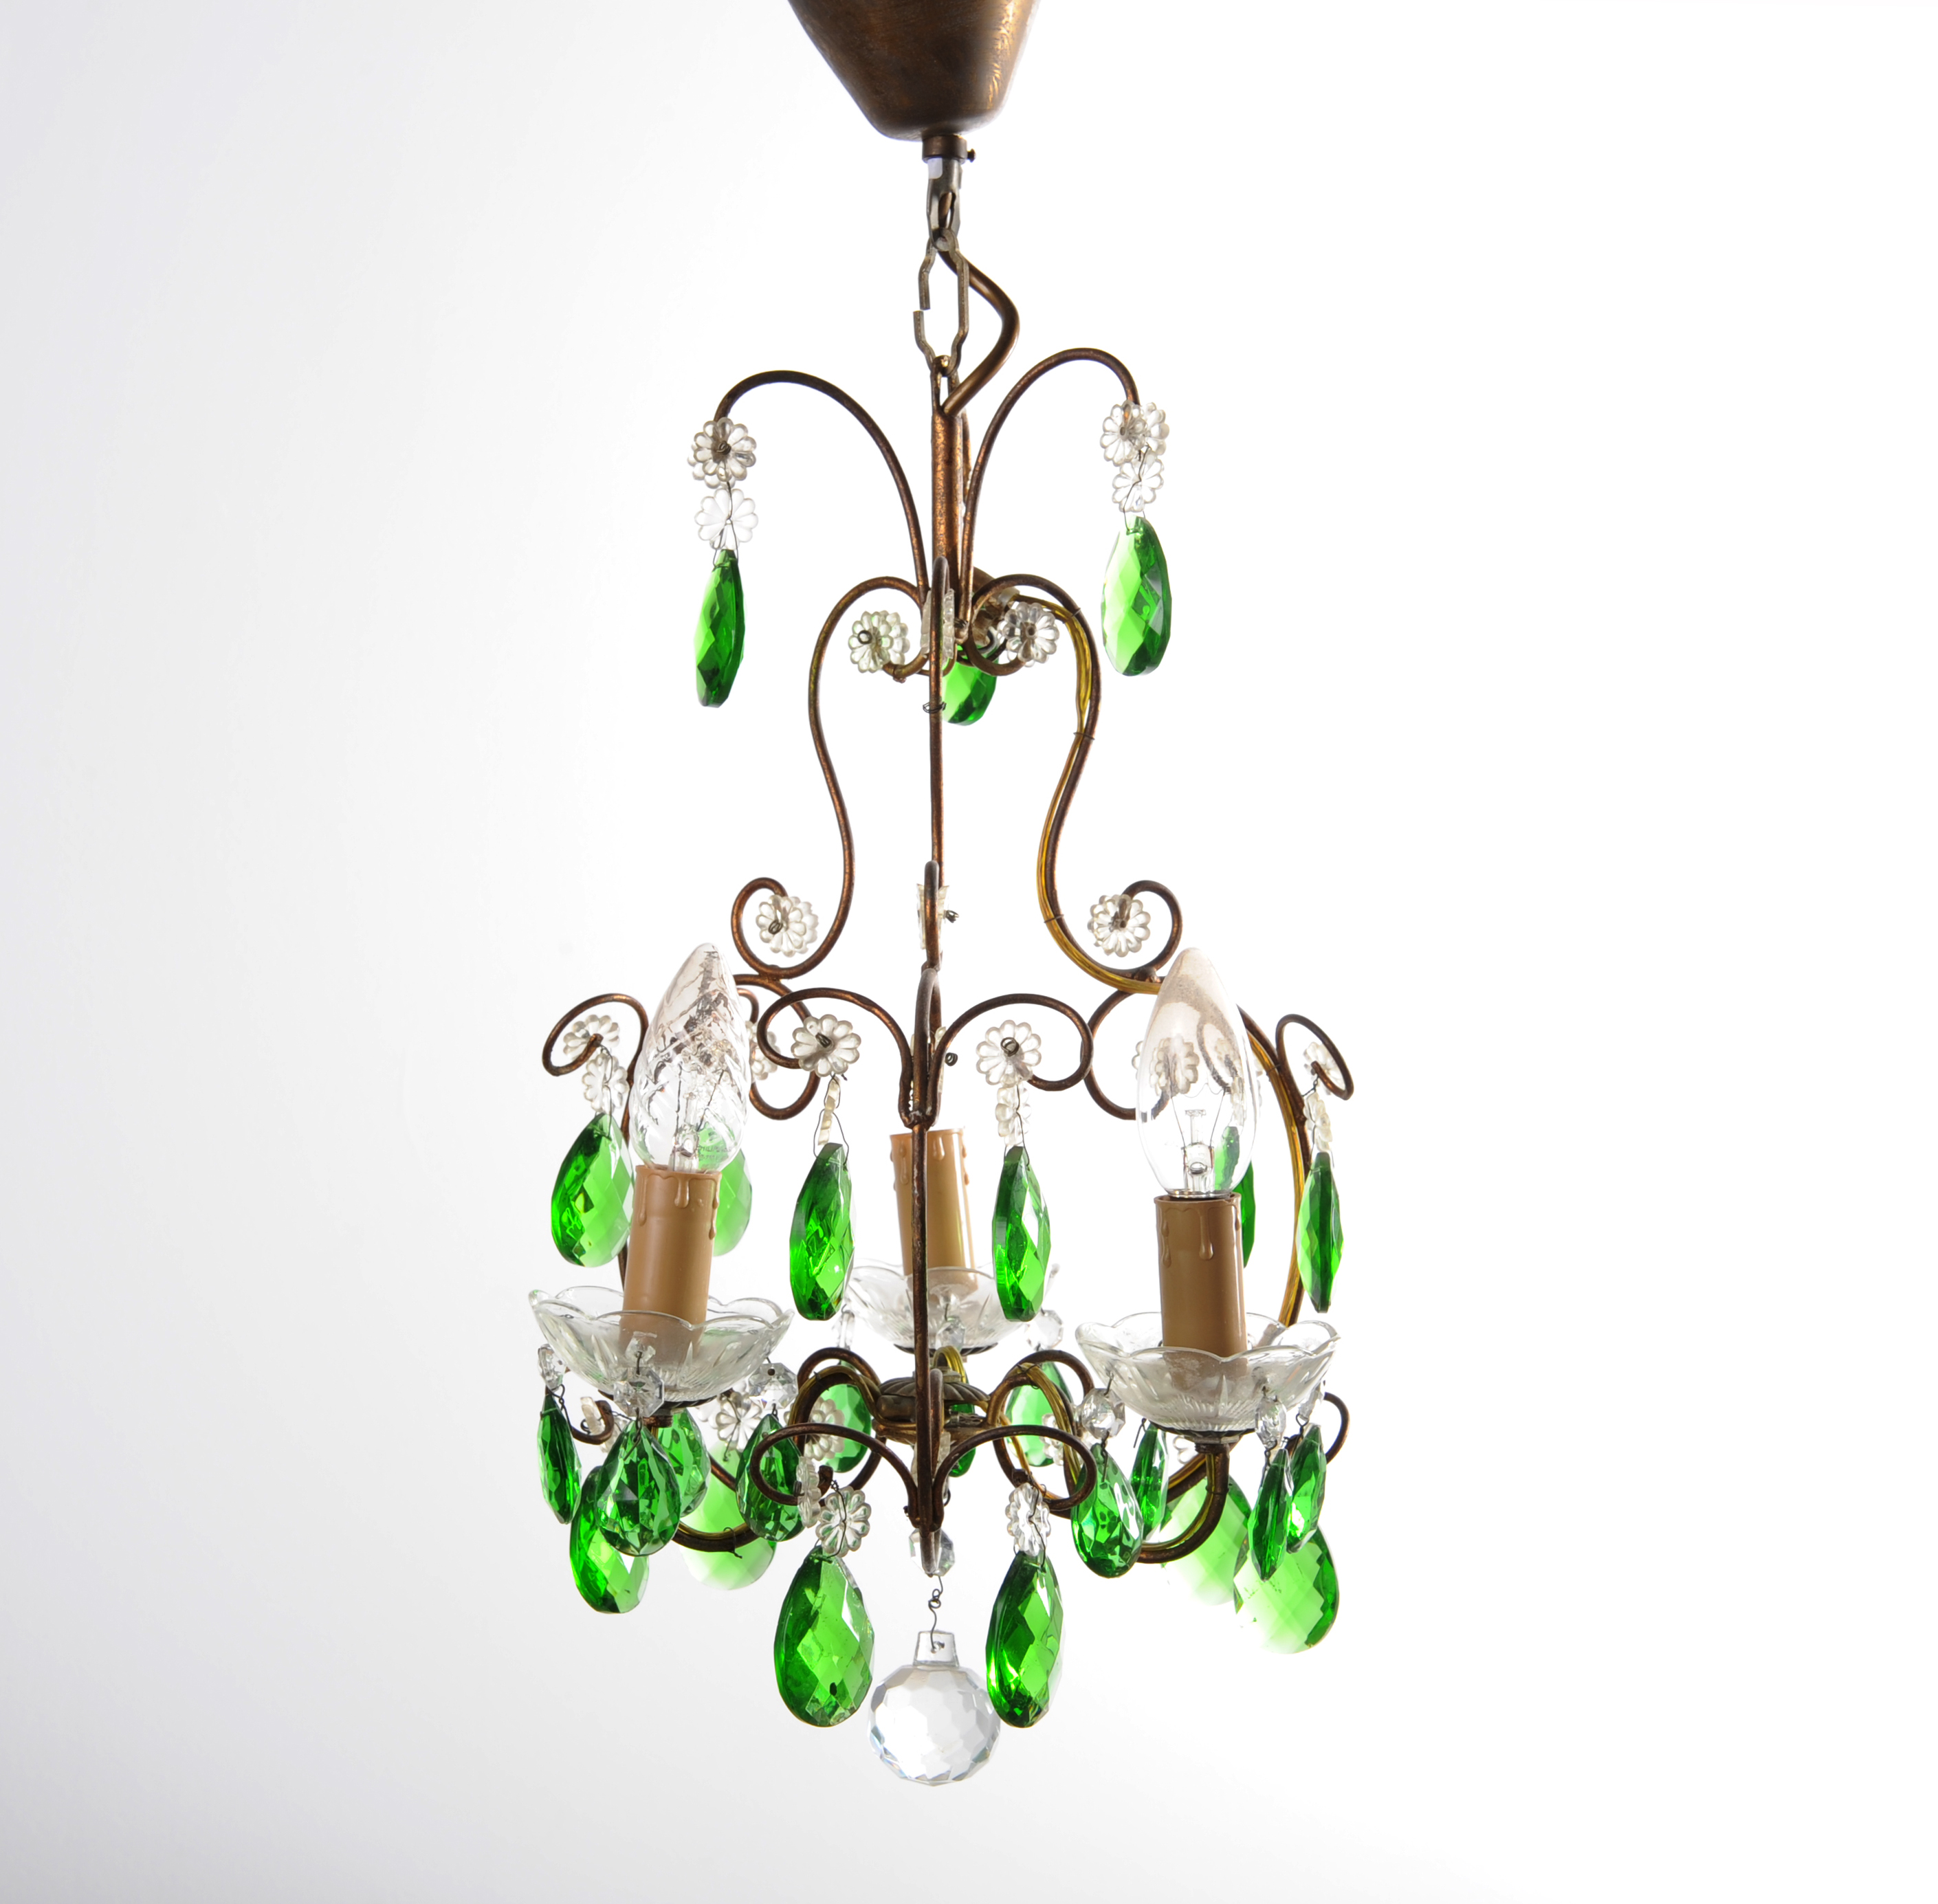 Antique french chandelier 1920s for sale antiques classifieds antique french chandelier 1920s for sale arubaitofo Image collections